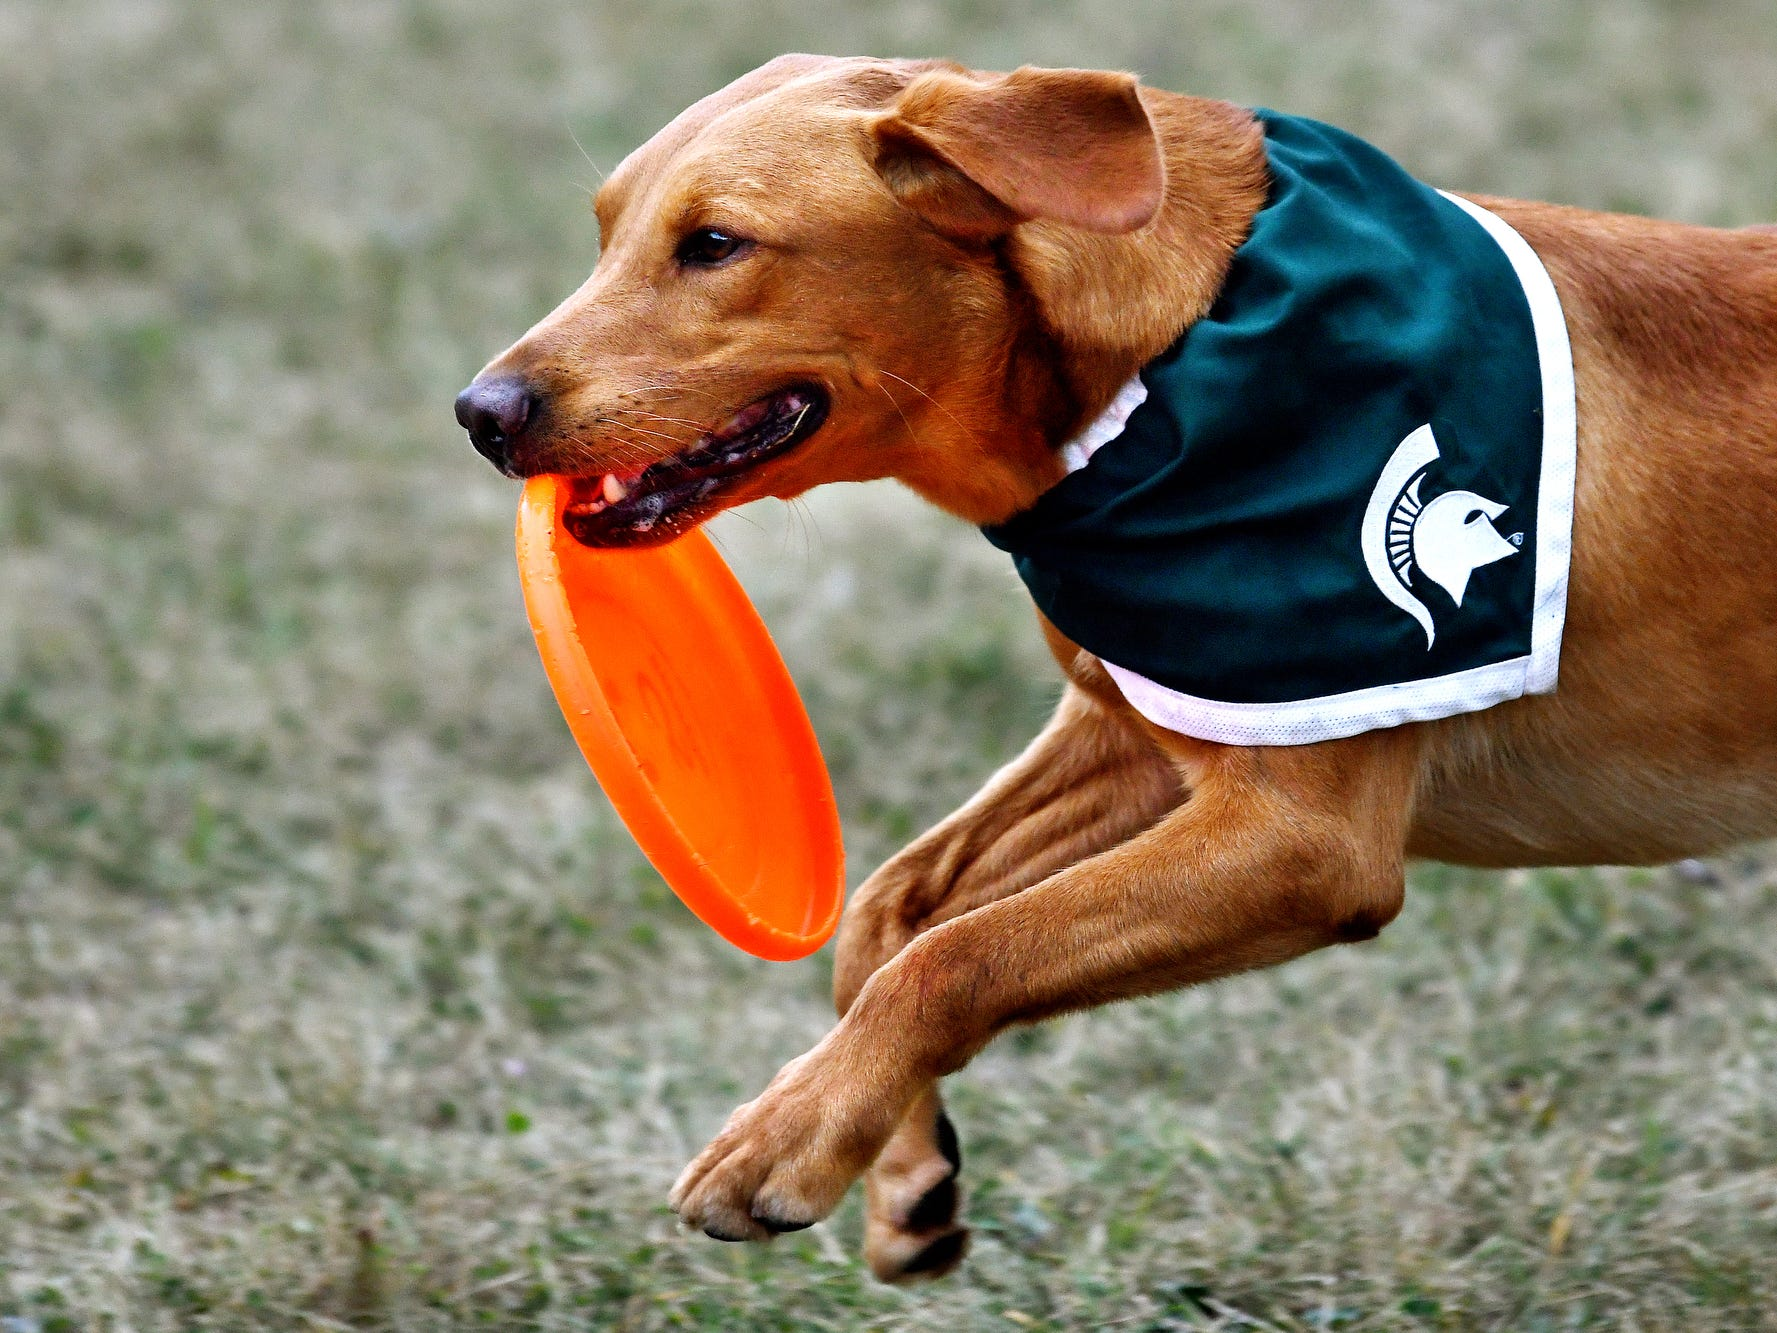 Zeke the Wonderdog IV carries a flaying disc back to his caretaker Jim Foley during Play in the Park on Tuesday, July 31, 2018, at Valley Court Park in East Lansing.